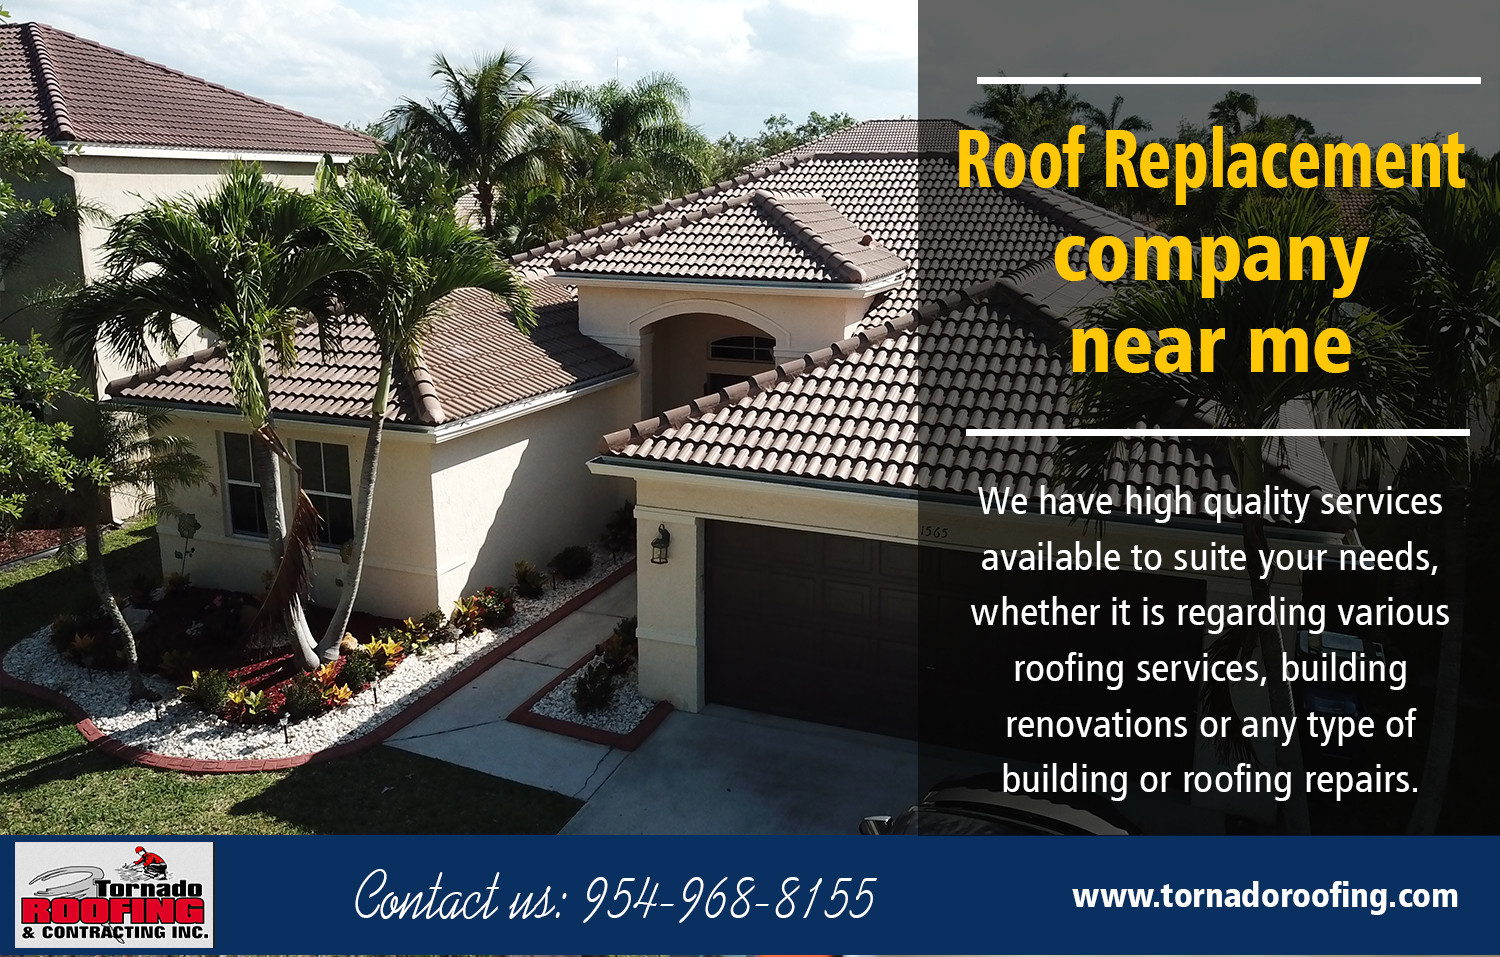 Roof Replacement Company near me Infographic